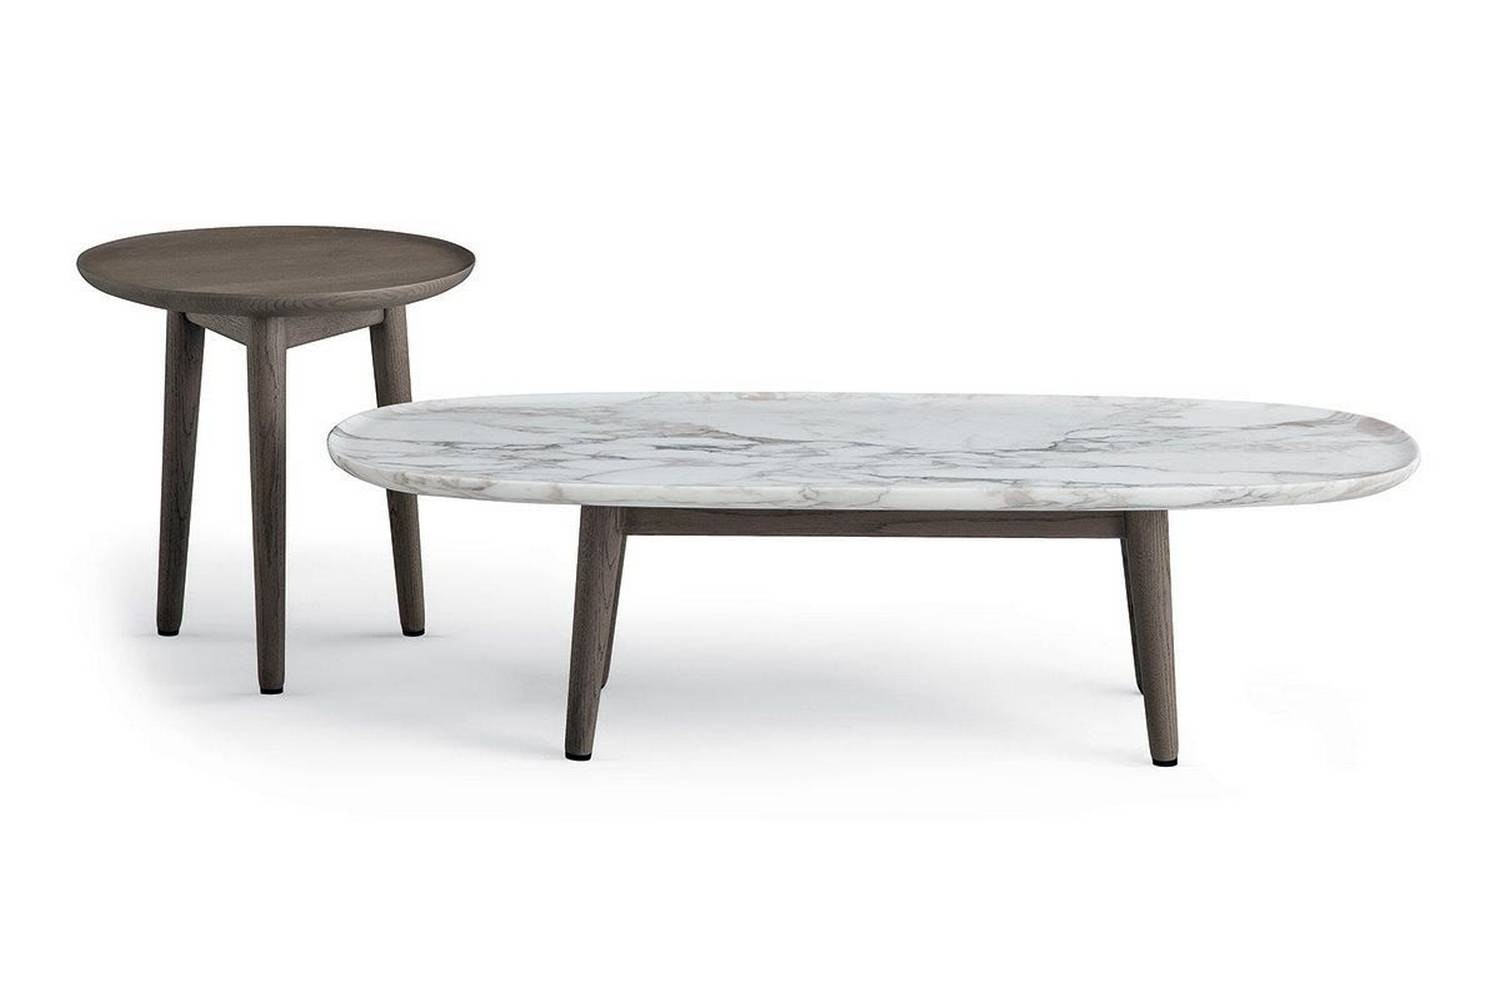 Mad Coffee Table by Marcel Wanders for Poliform